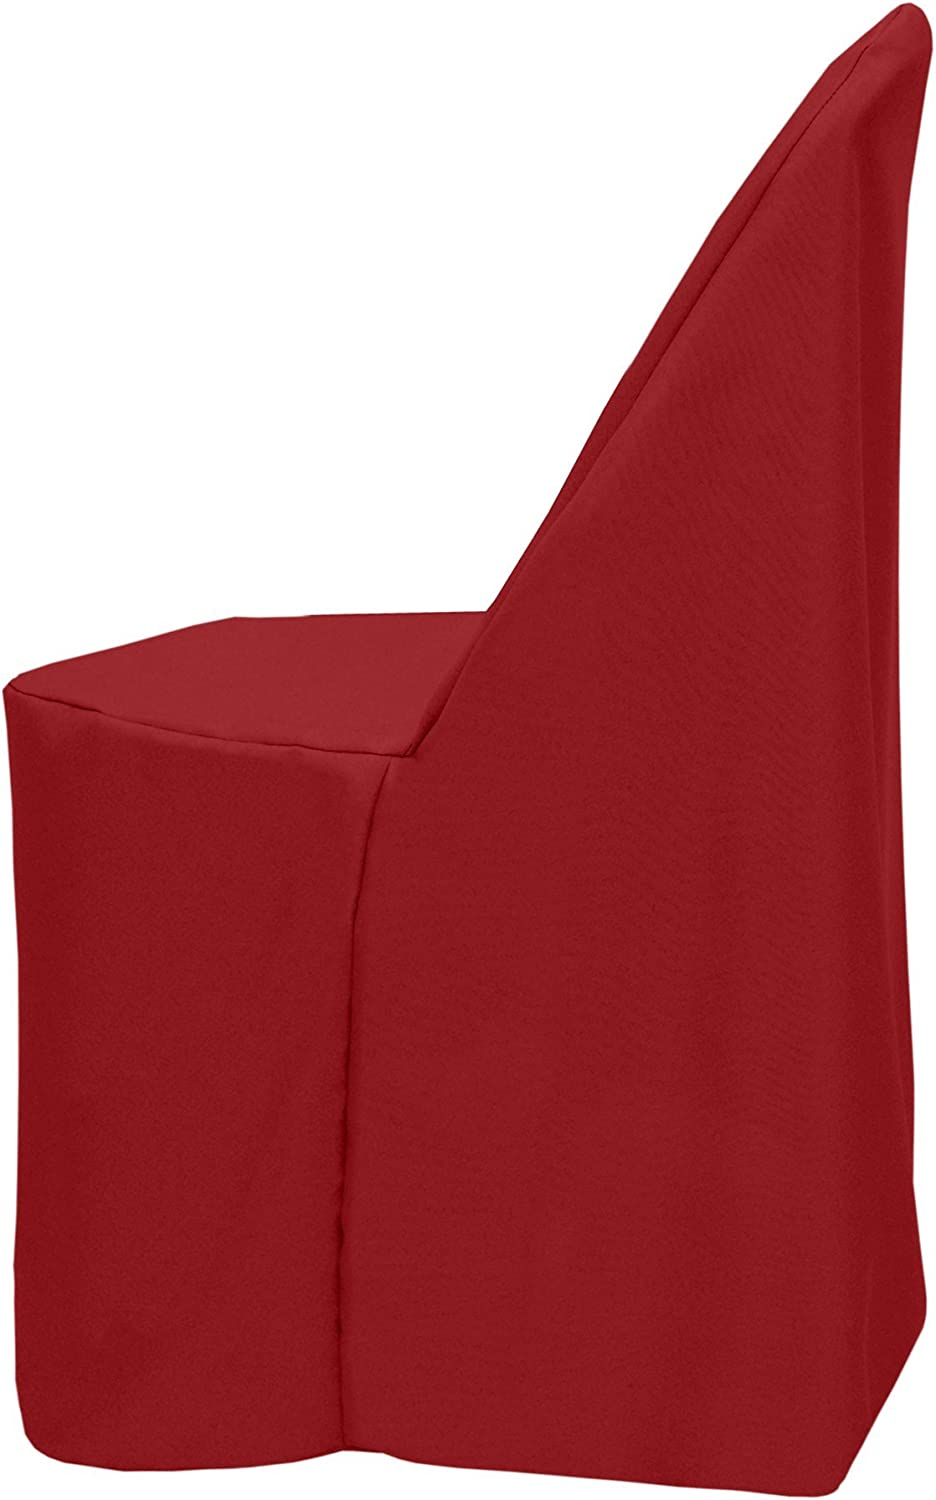 Ultimate Textile Polyester Folding Chair Cover - Fits Metal or Plastic Folding Chairs, Cherry Red